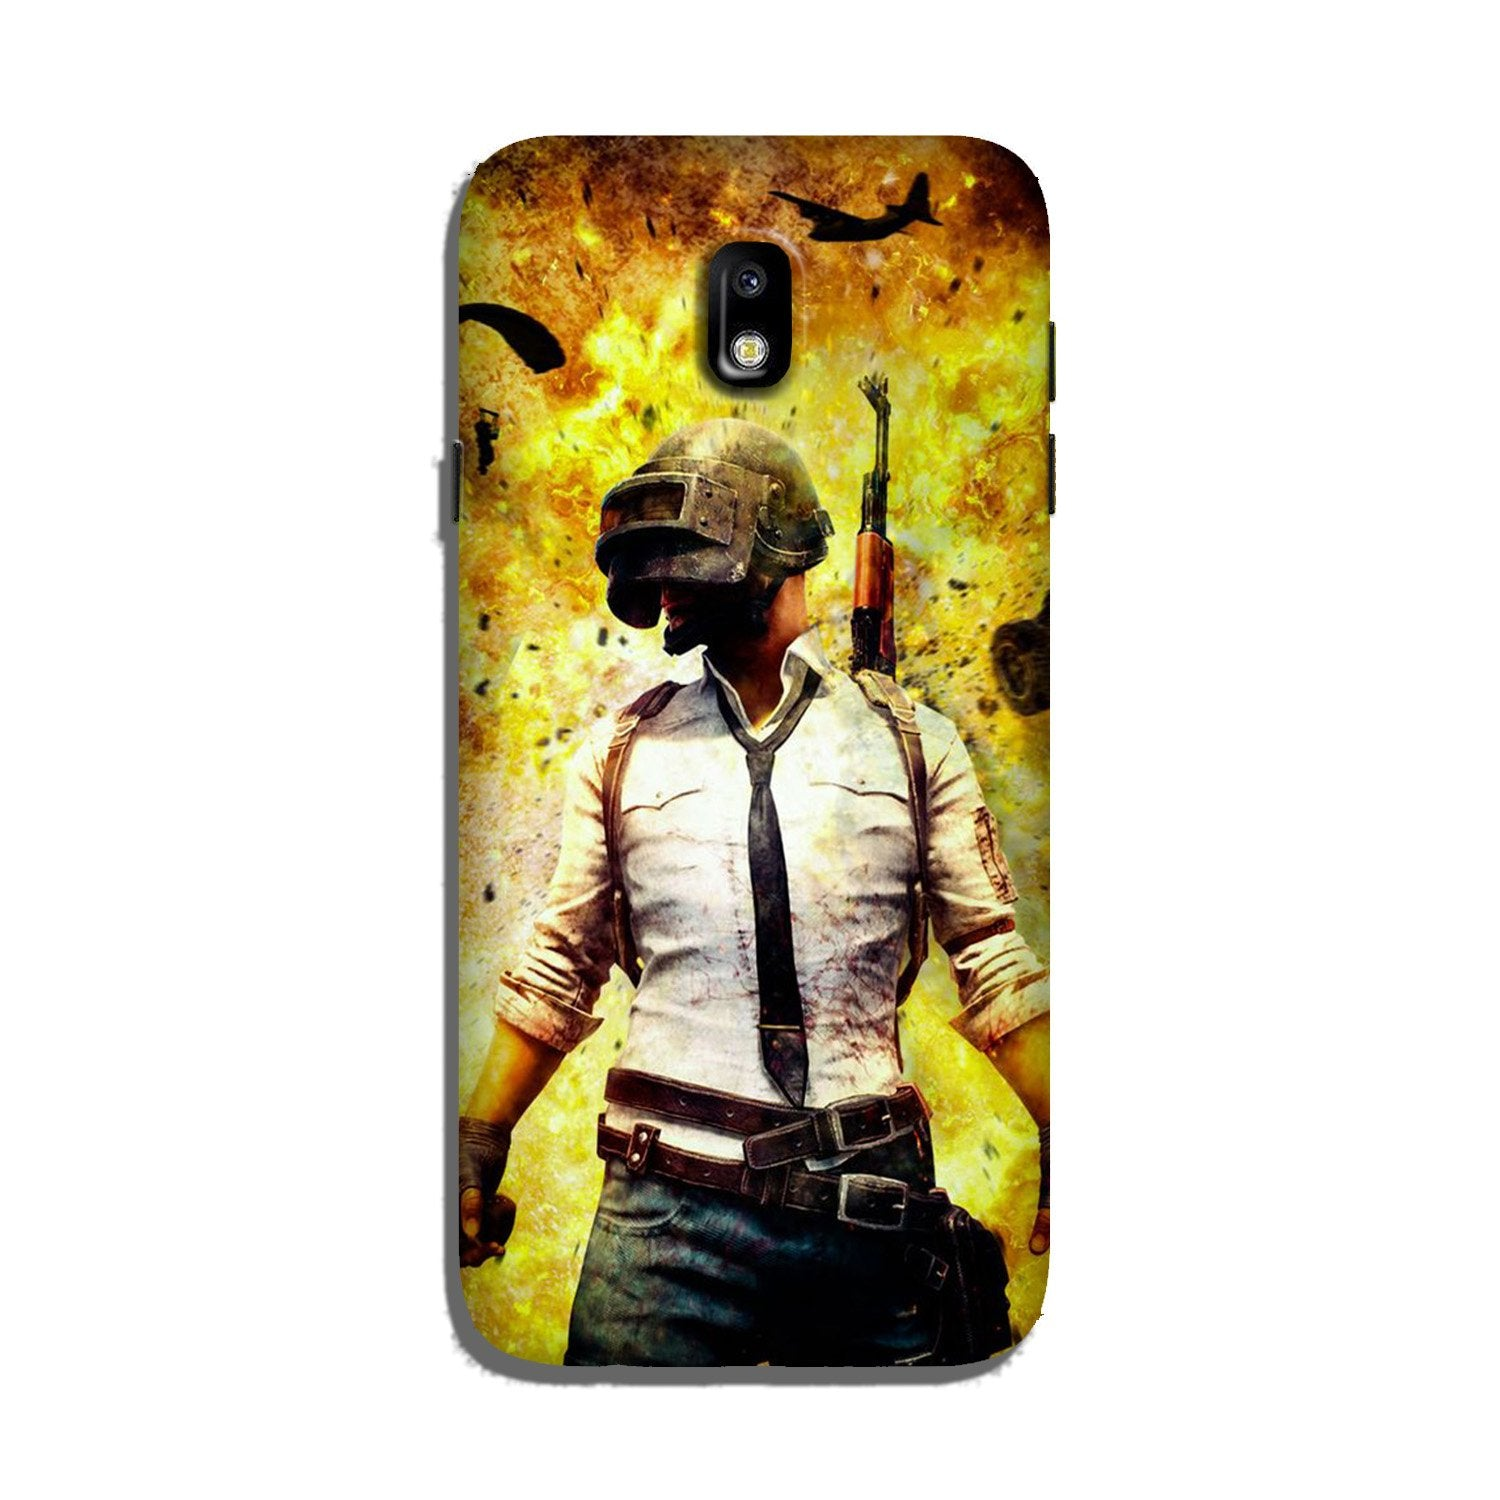 Pubg Case for Galaxy J7 Pro  (Design - 180)